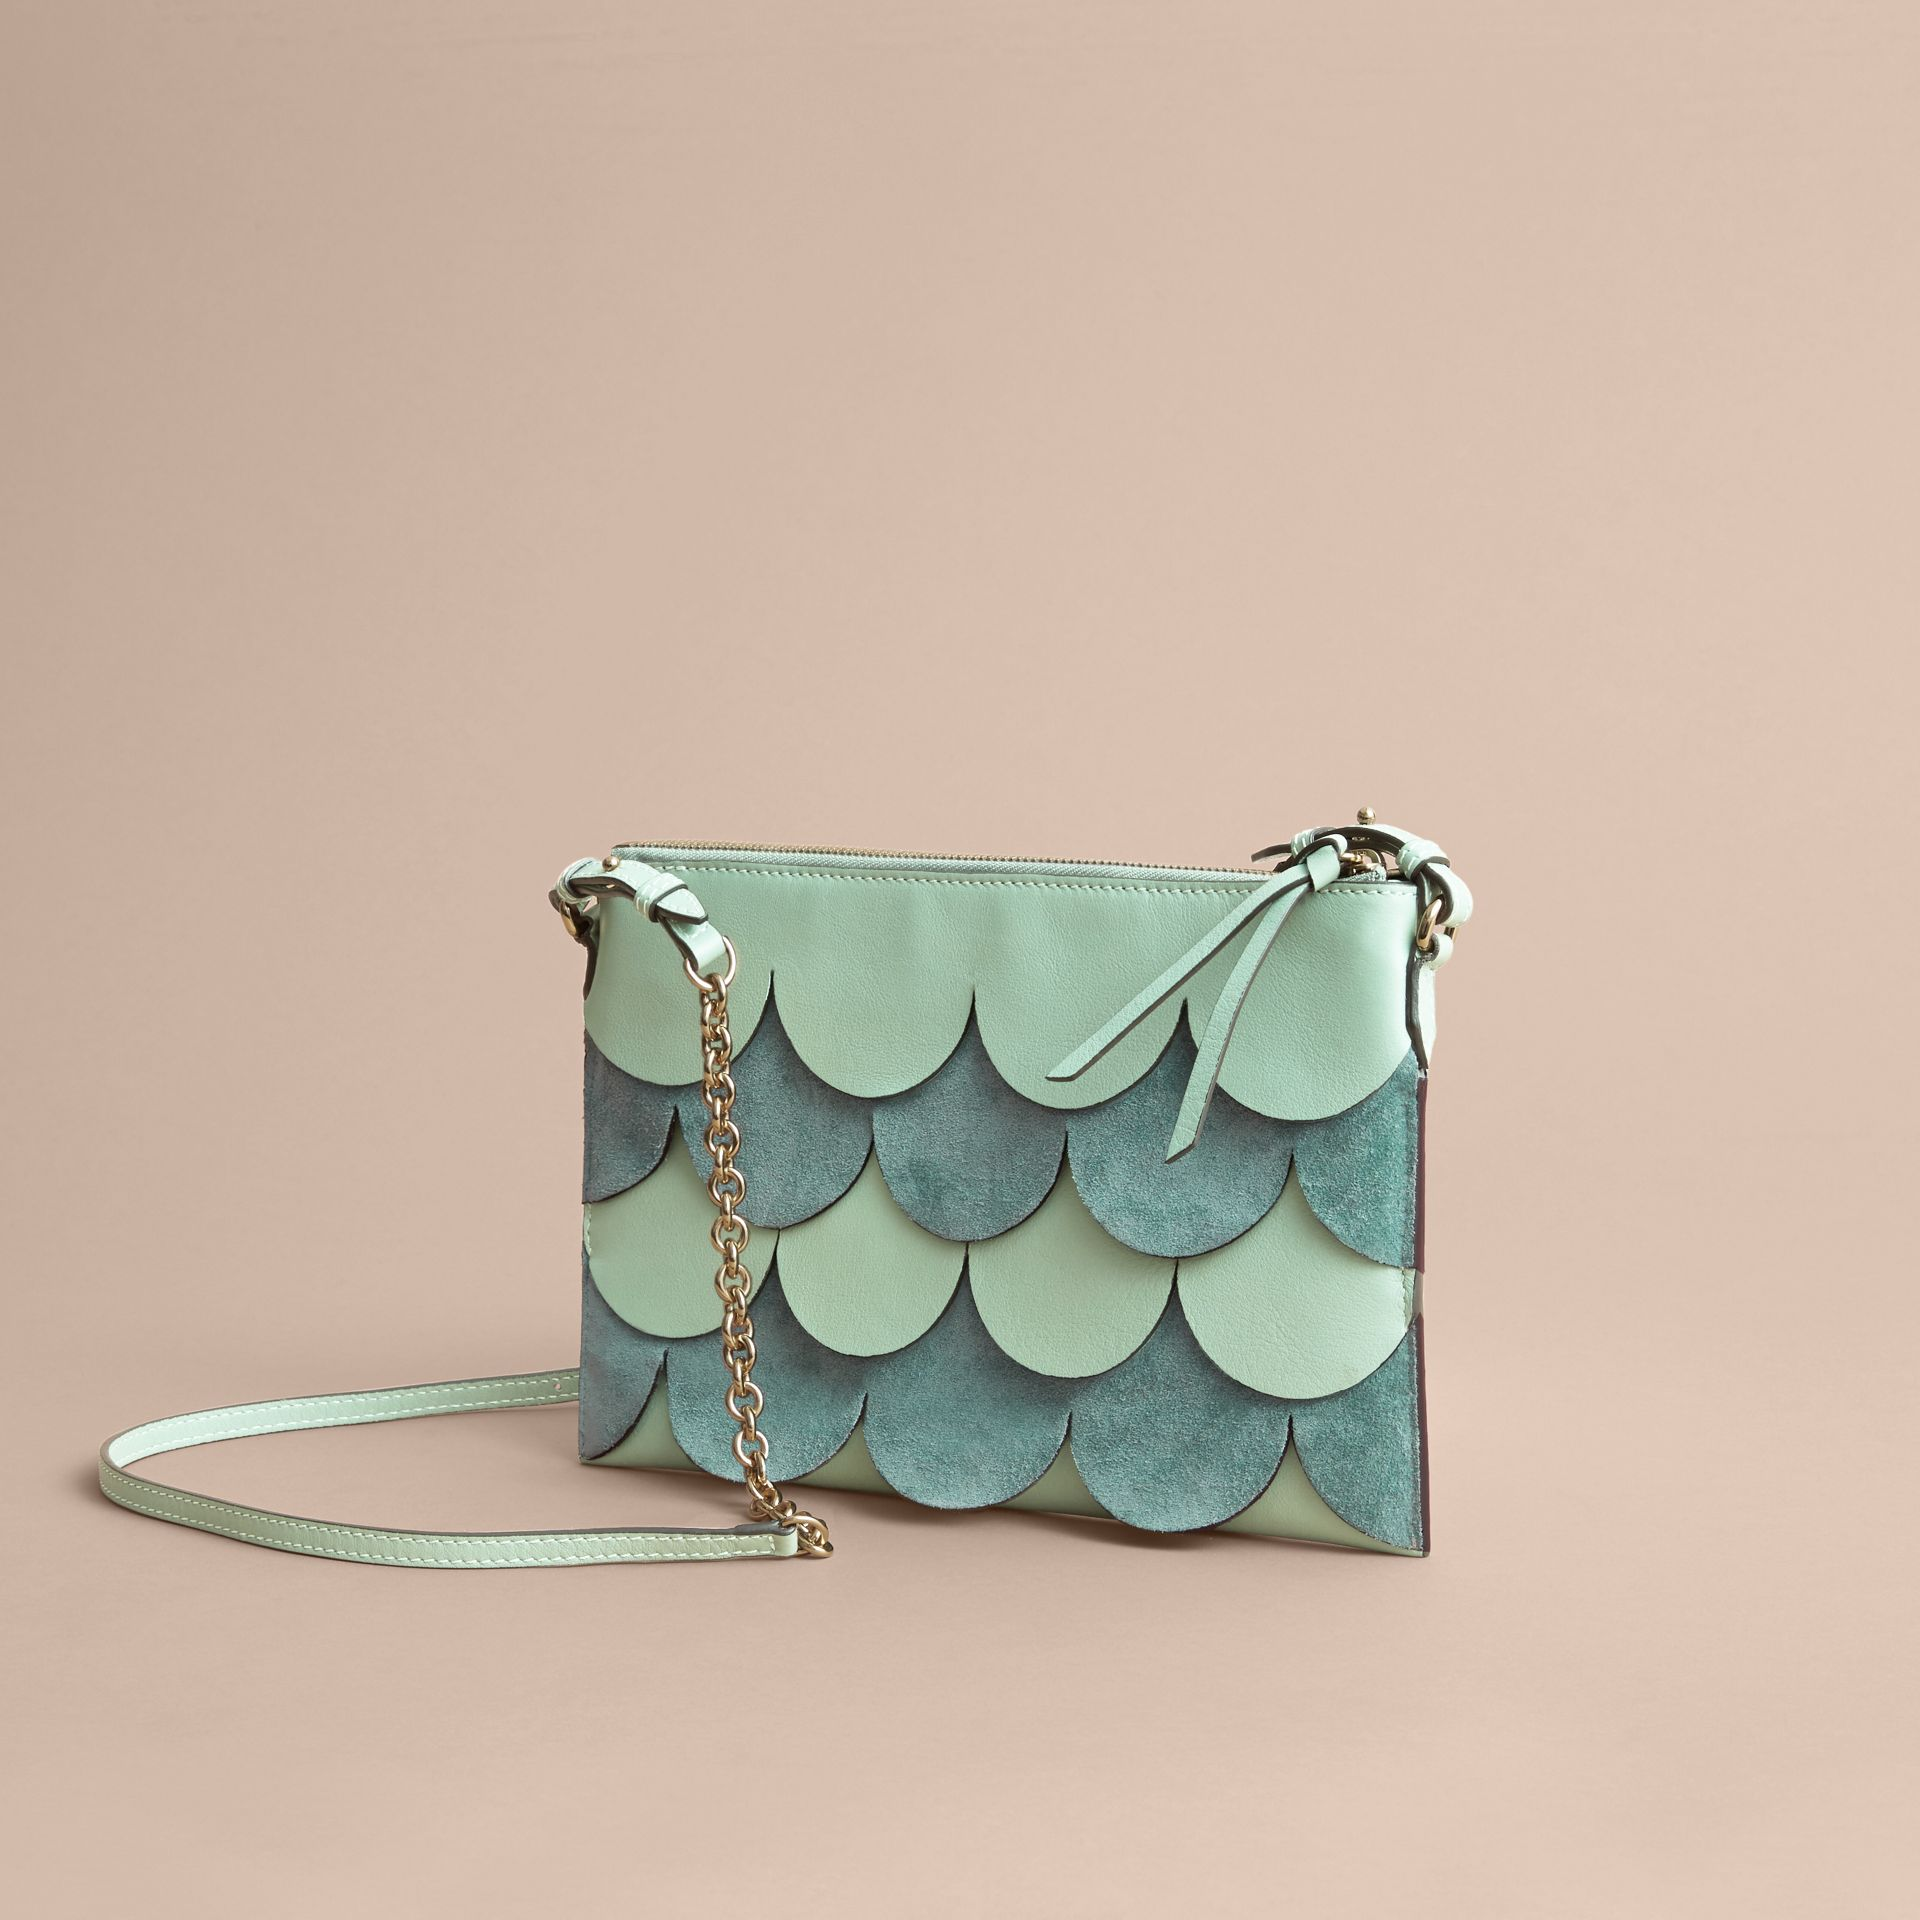 Two-tone Scalloped Leather and Suede Clutch Bag in Celadon Green - Women | Burberry - gallery image 5